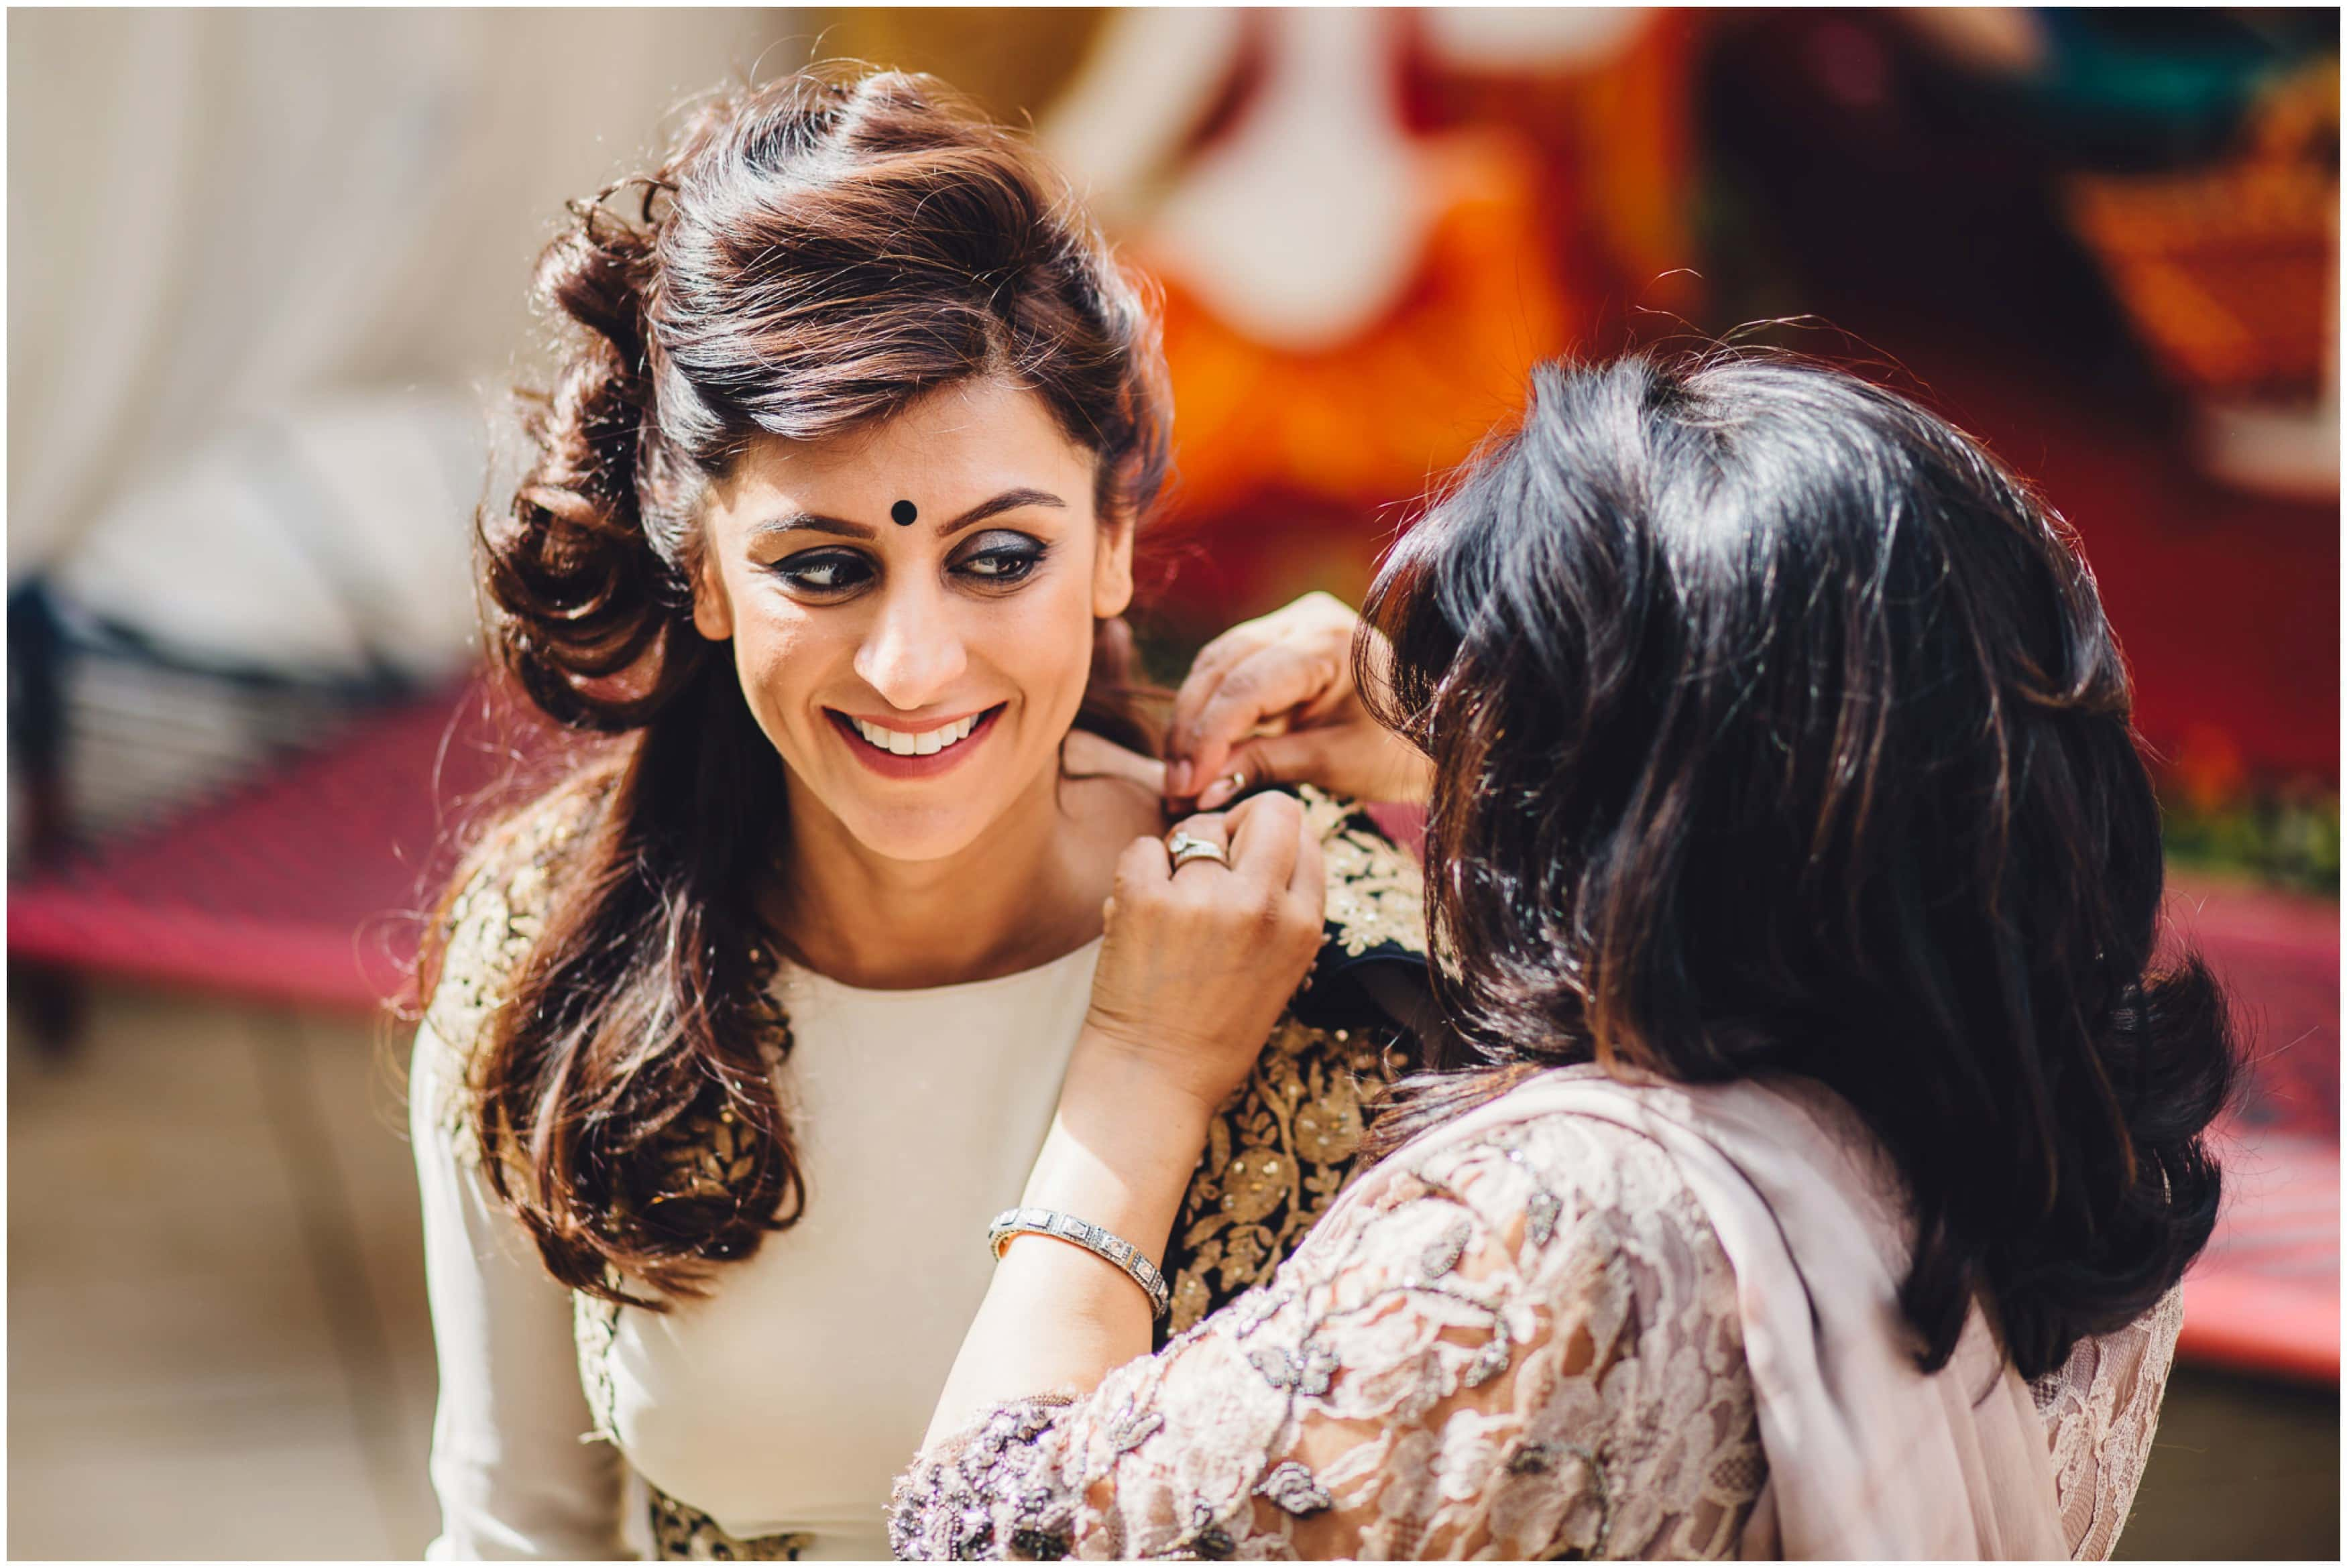 002 Sikh Wedding Photography Birmingham